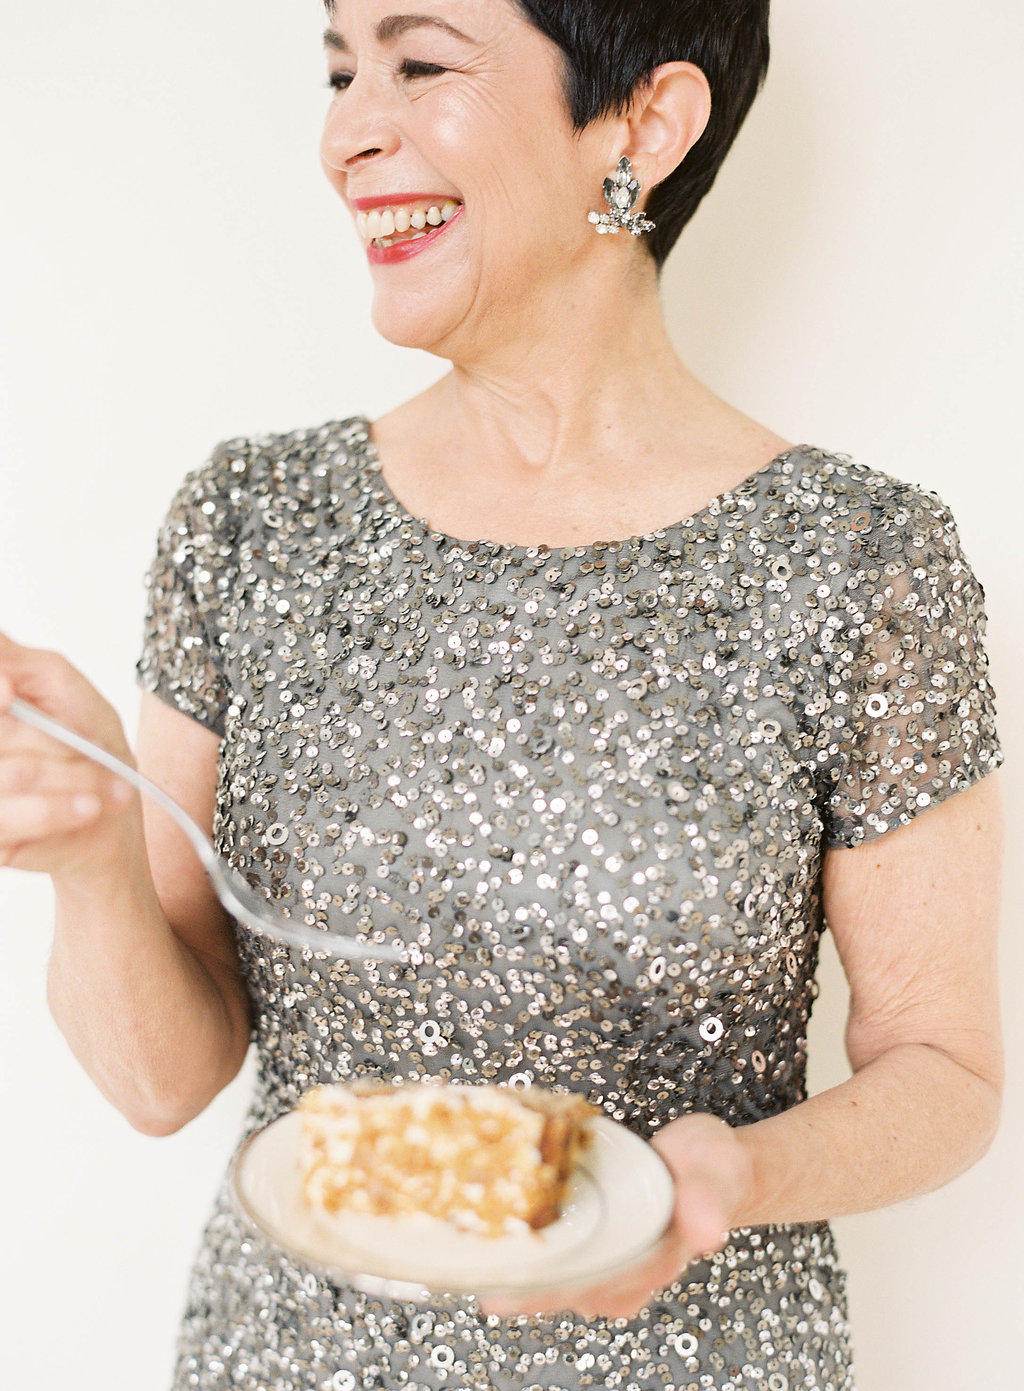 Copy of Mom eating cake in Adrianna Papell crunchy bead gown in lead silver sequin